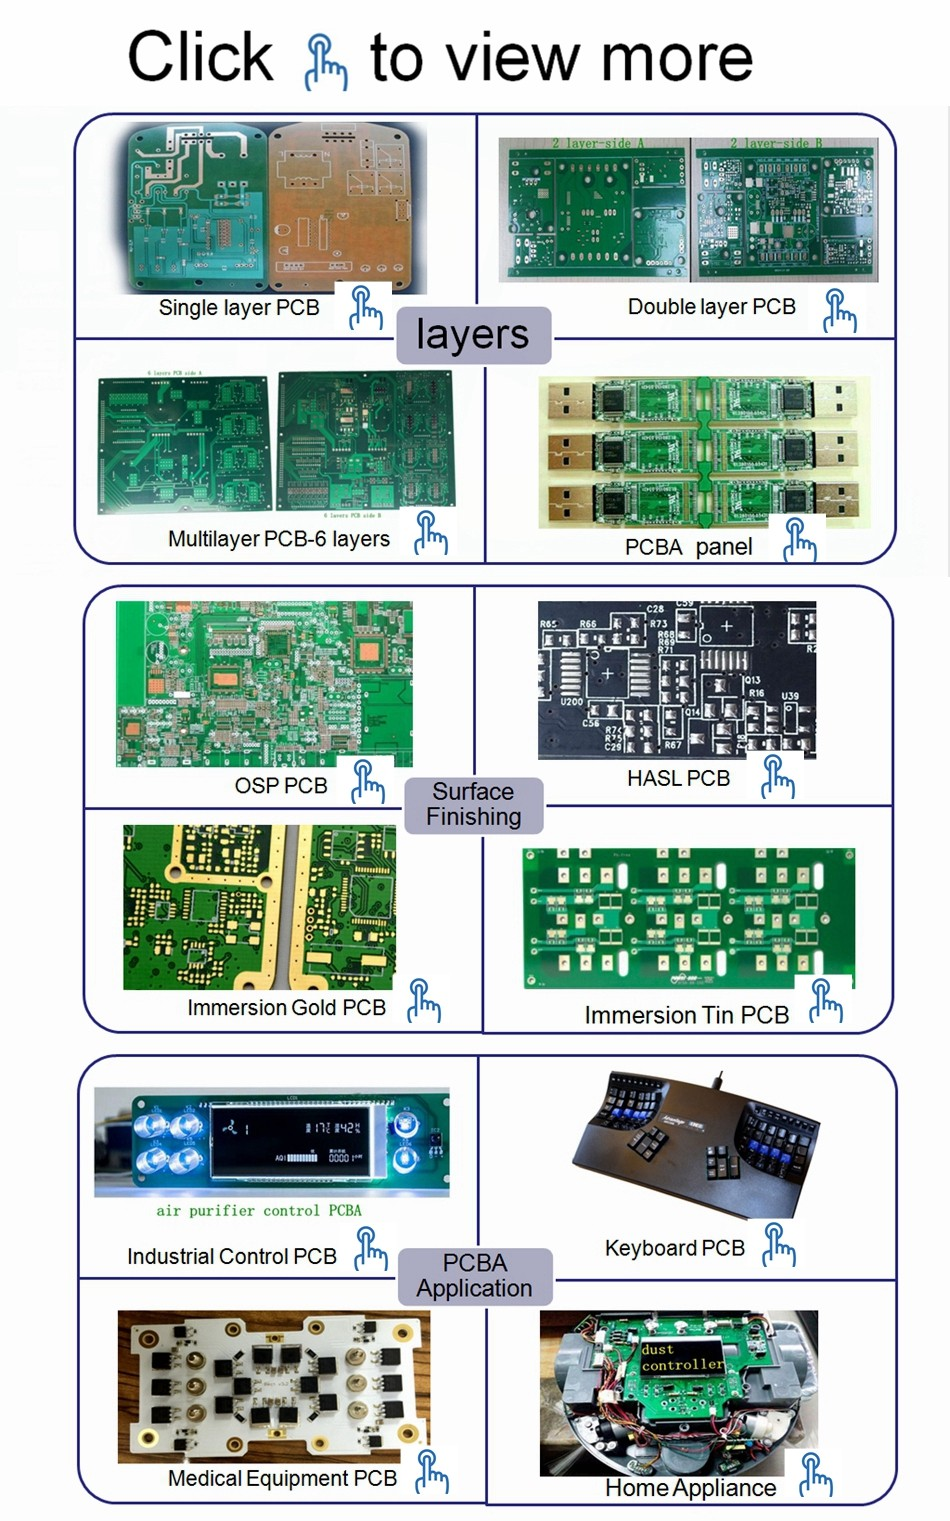 Super Quality Oem Flexible Pcb Printed Circuit Control Board Rigid Flex And Examples Products Show Shenzhen Custom Rohs Pcba Multilayer Assembly Manufacturer Development Stamped Fr4 94v0